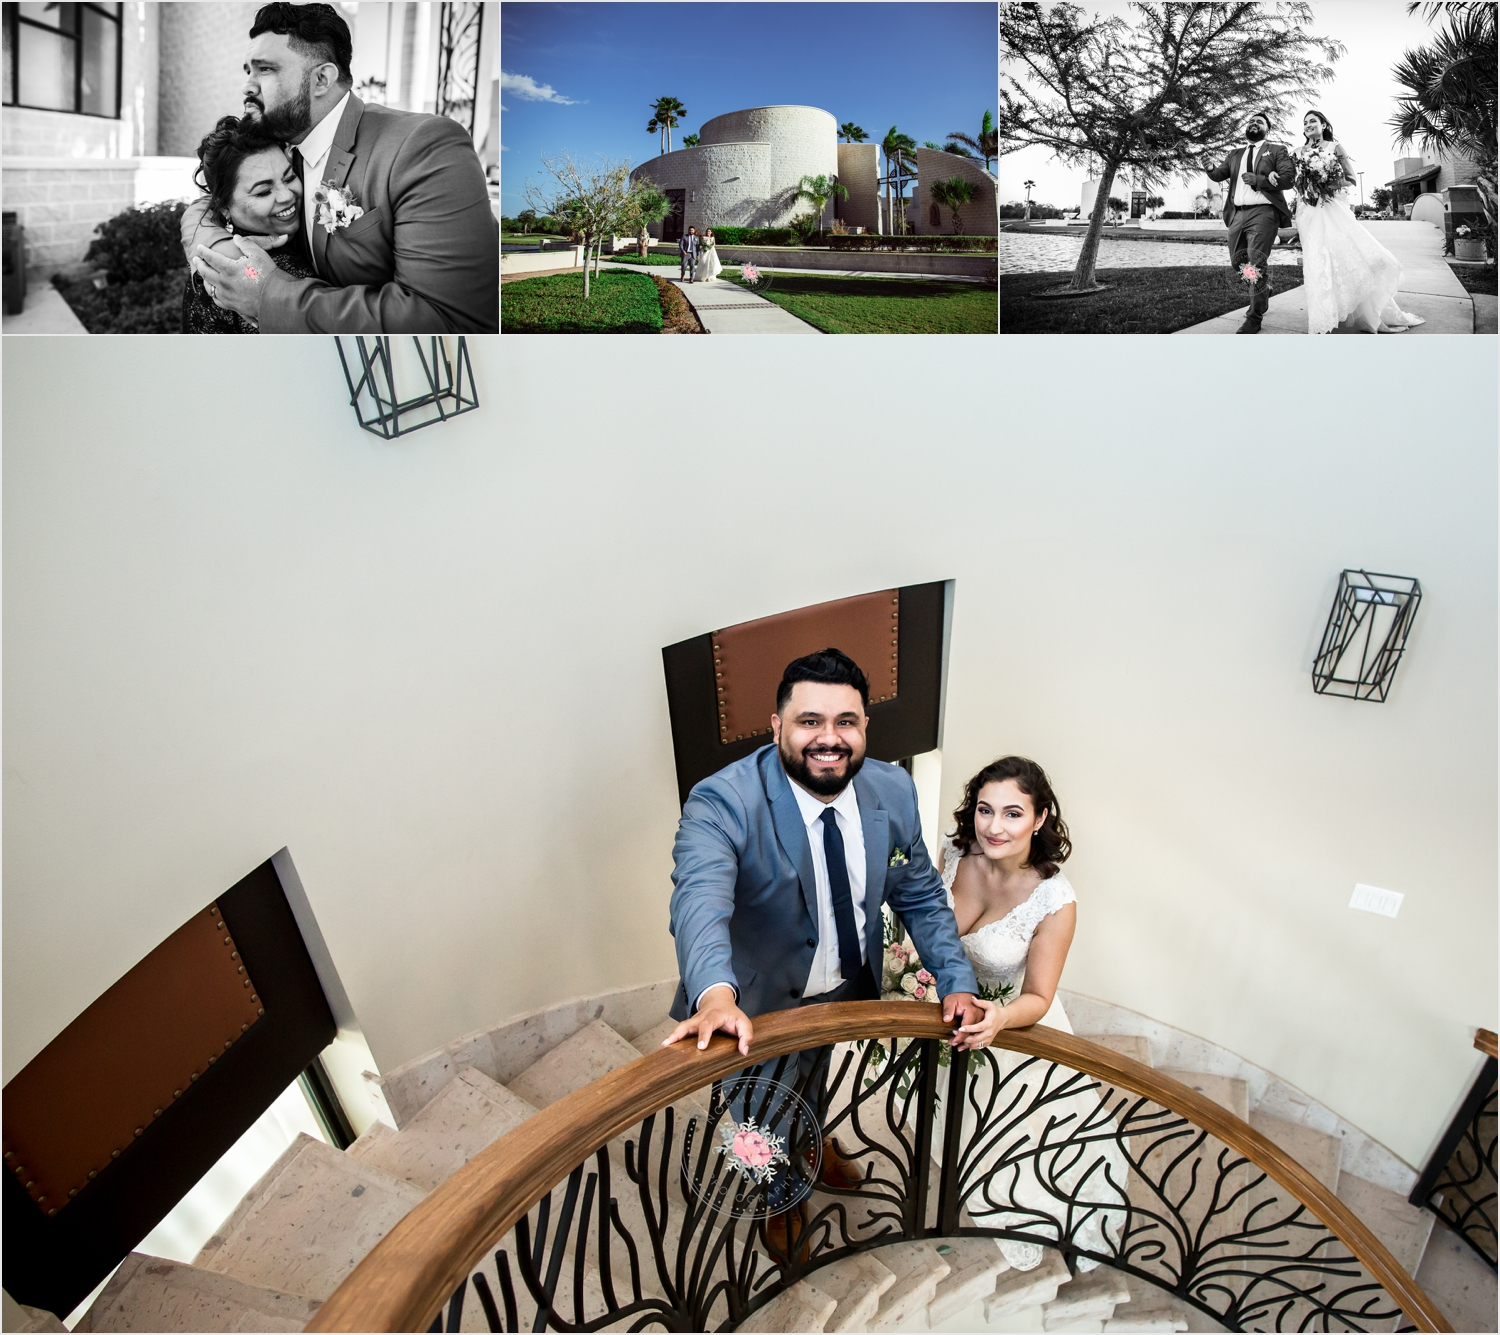 Candid Wedding Photos captured by Norma Hess Photography | Sentimental Wedding Edinburg, TX